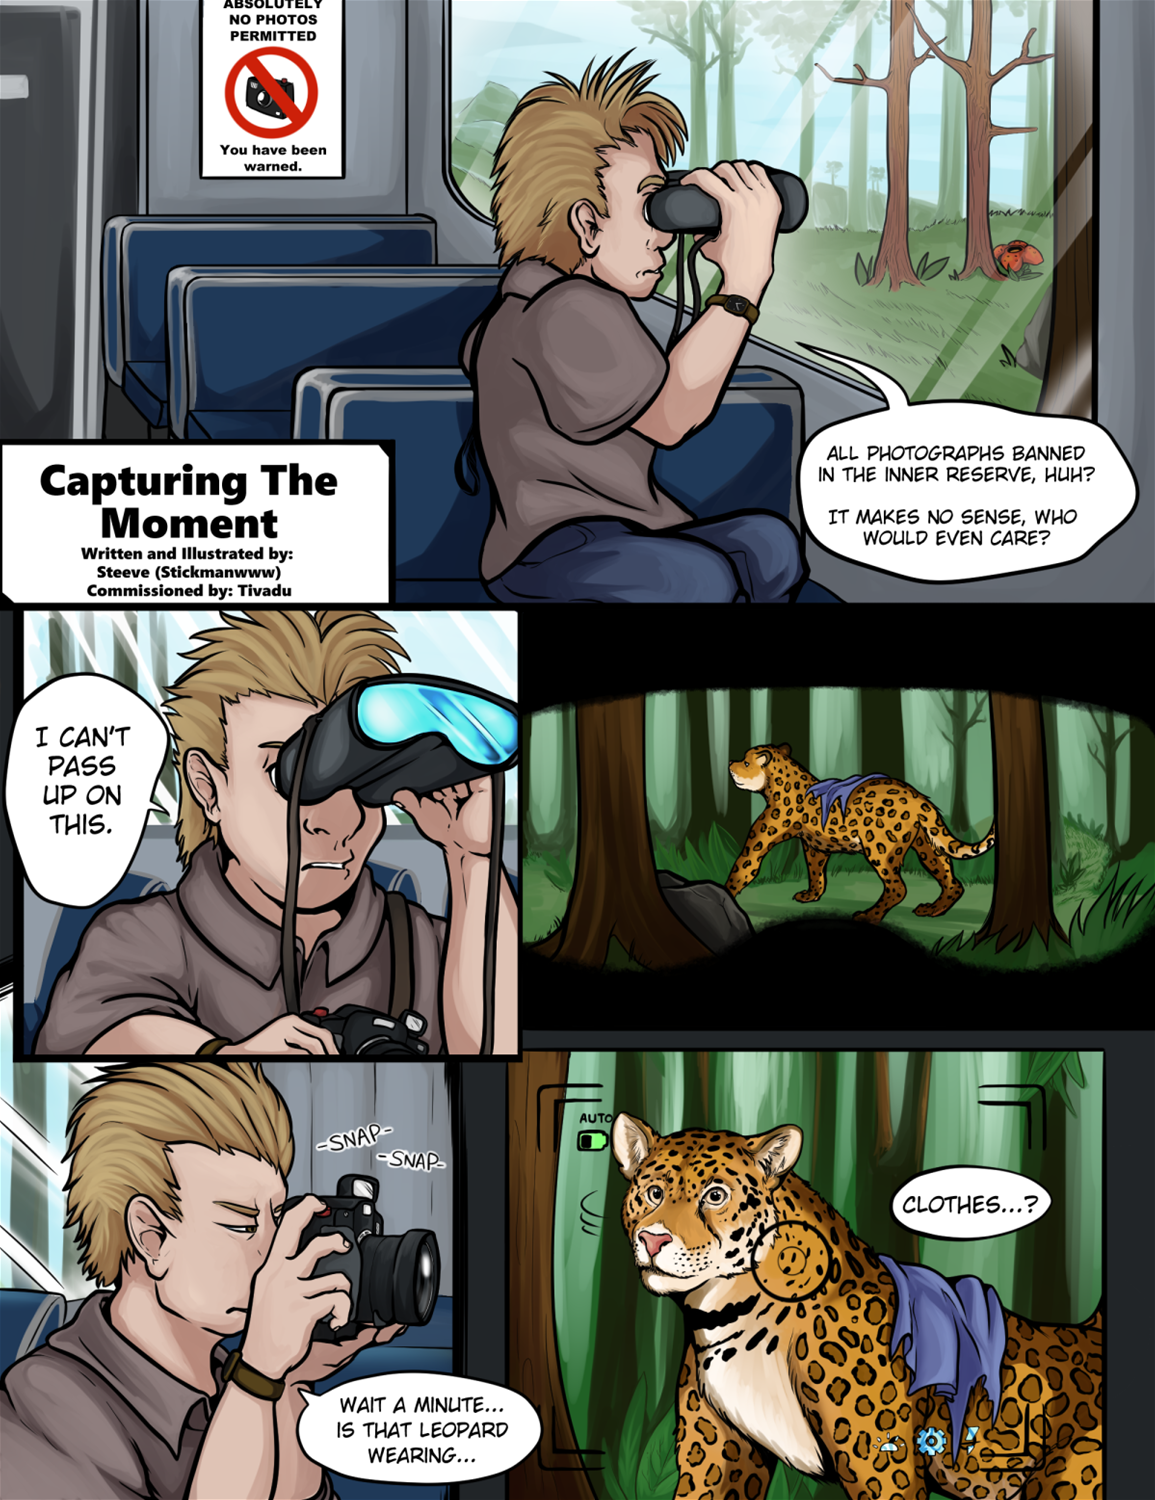 Capturing the Moment by Stickmanwww